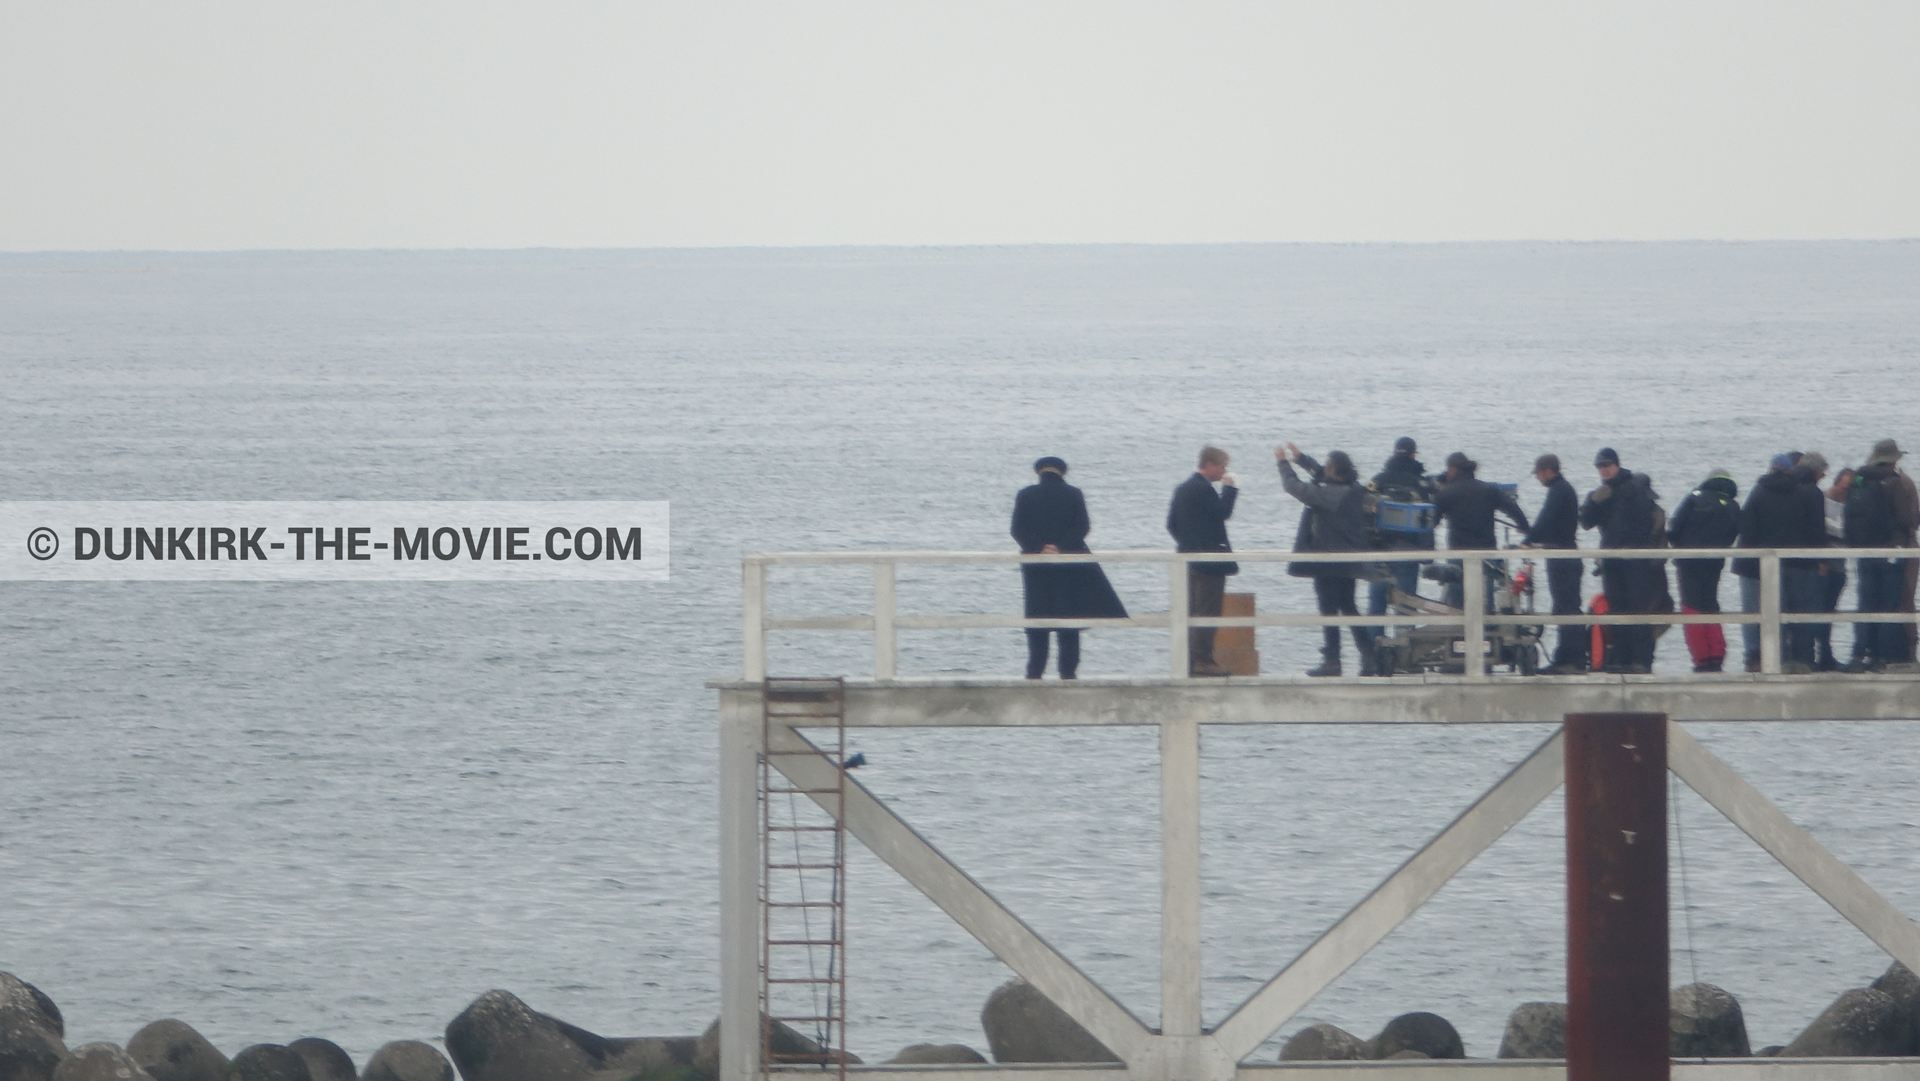 Picture with Hoyte van Hoytema, EST pier, Christopher Nolan, technical team,  from behind the scene of the Dunkirk movie by Nolan